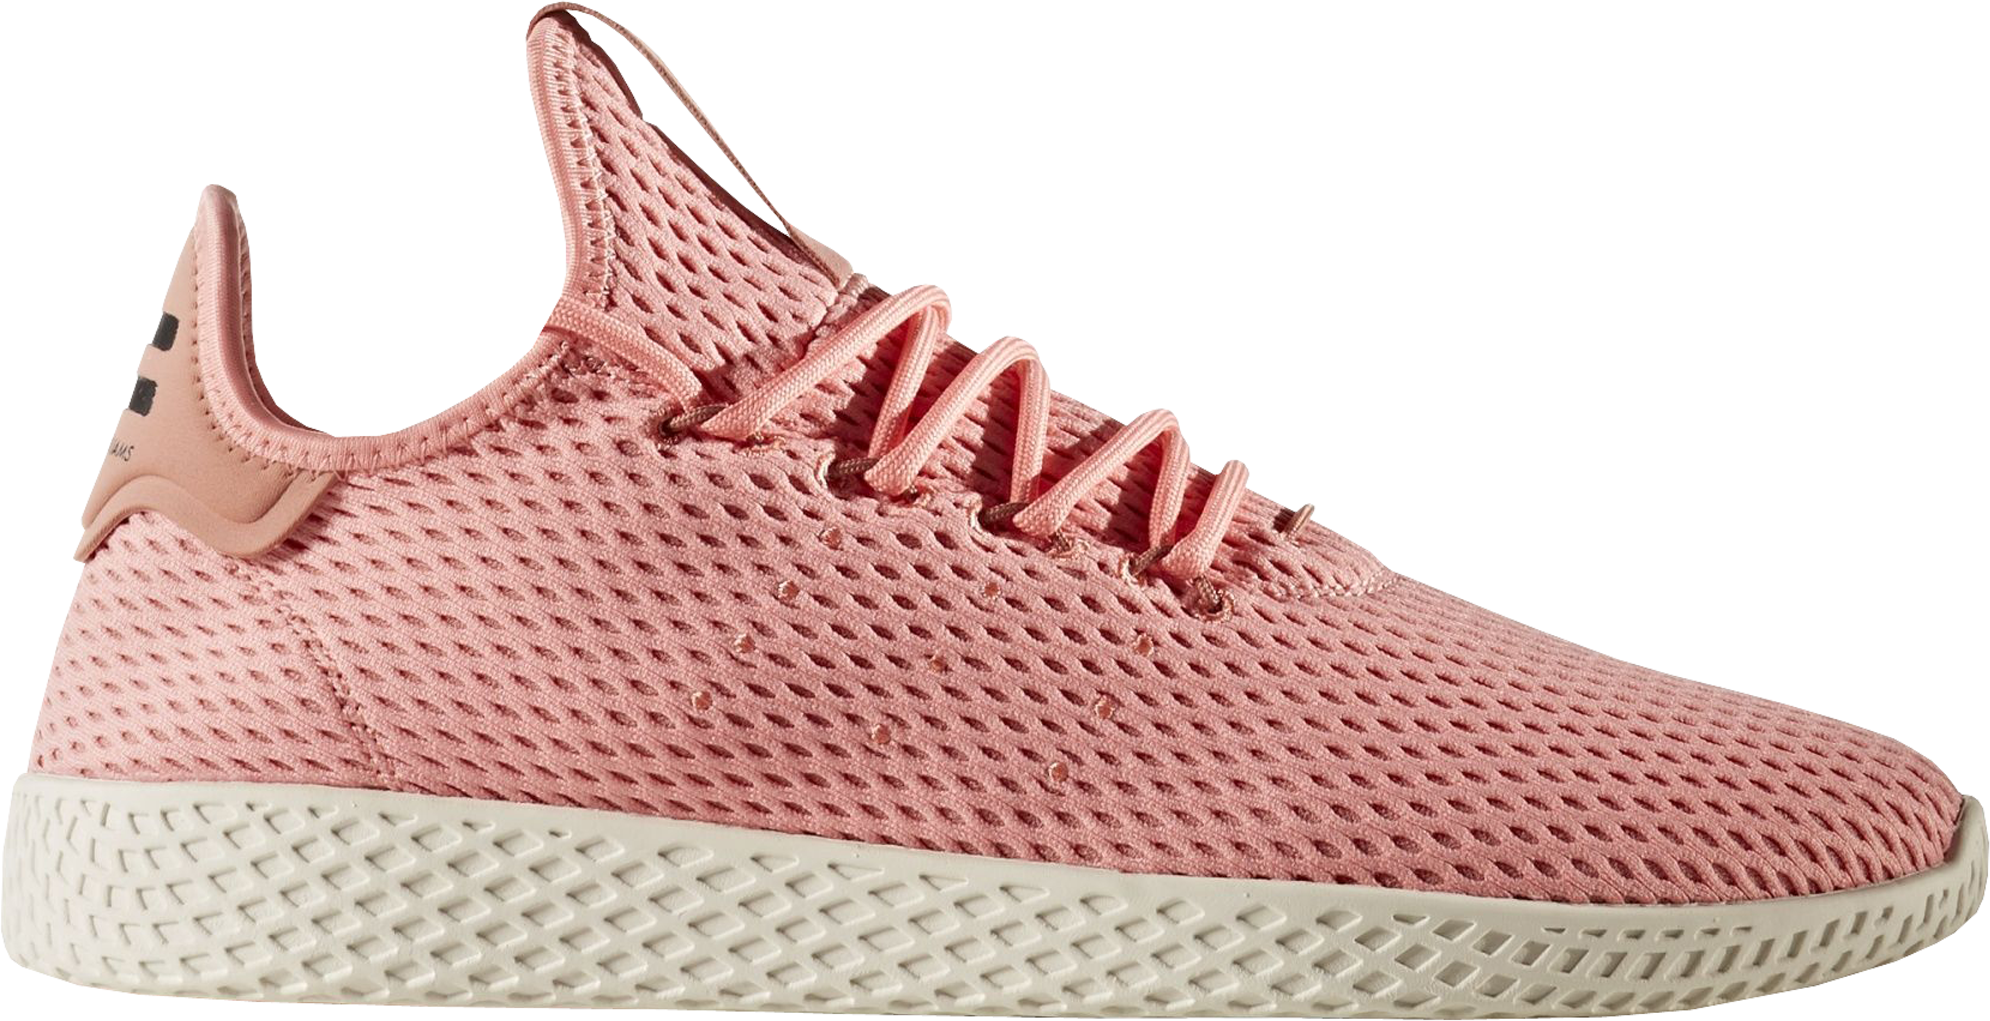 Adidas Tennis Hu Pharrell Tattile Rose By8715